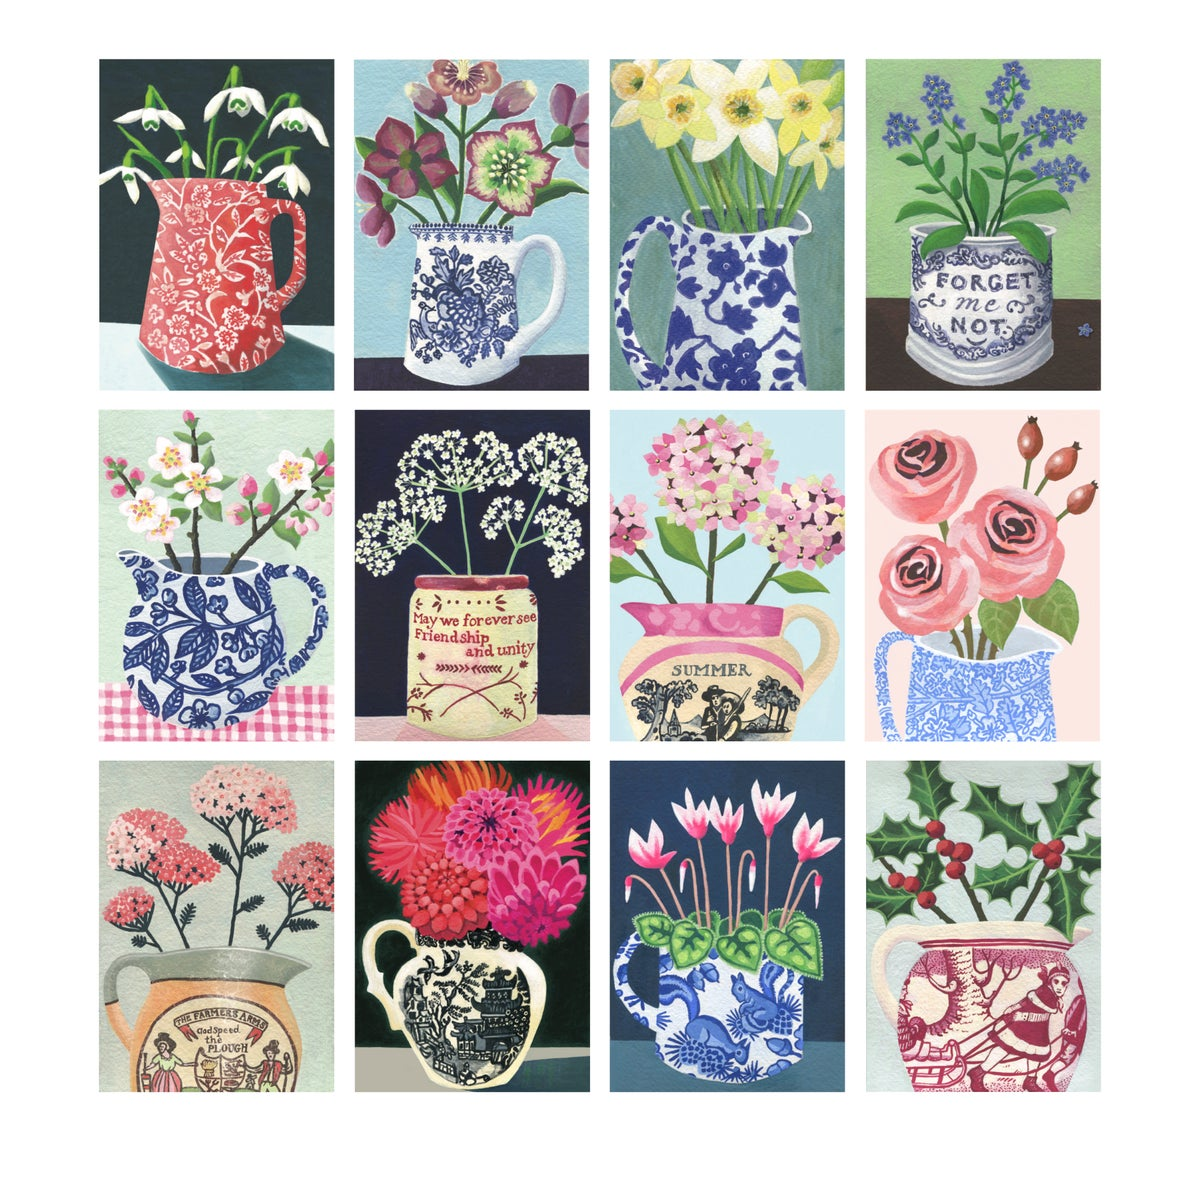 The Flowering Year Limited Edition Print